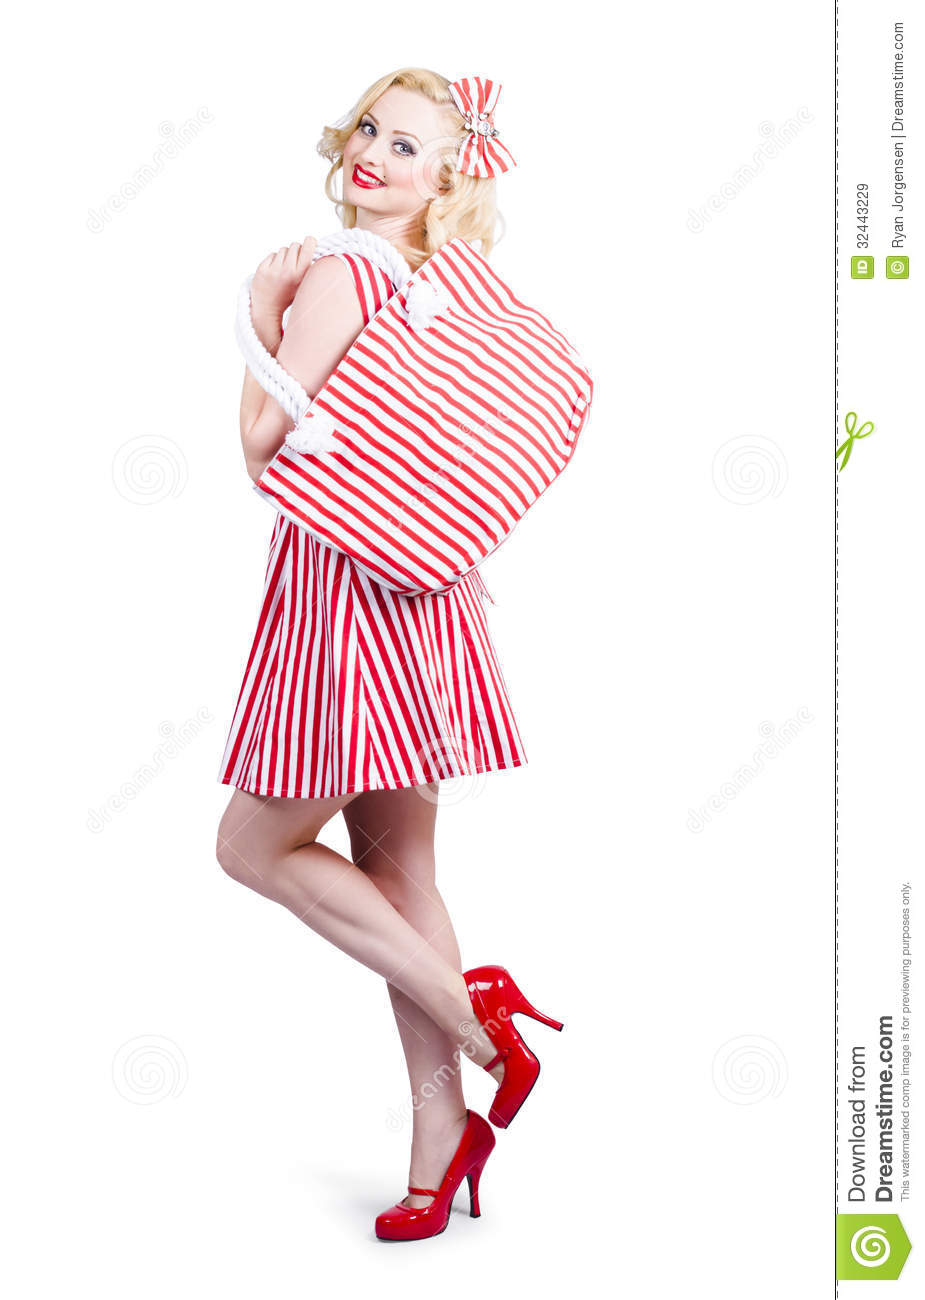 http://thumbs.dreamstime.com/z/pin-up-girl-wearing-stripped-red-dress-holding-bag-picture-vintage-woman-matching-posing-fashion-accessory-shopping-32443229.jpg